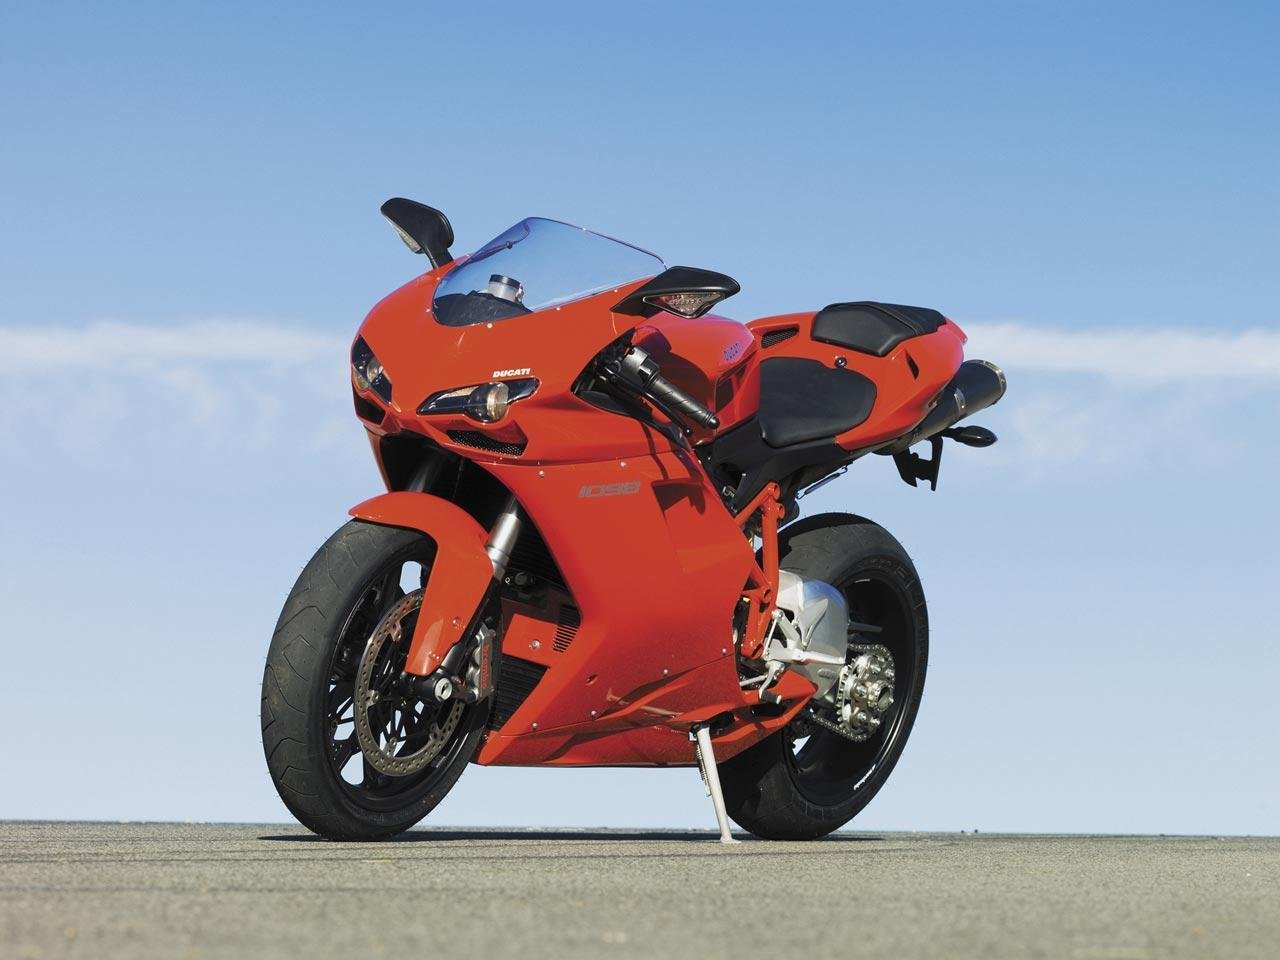 Ducati Vs Ferrari During Quot Ducs Fly South Quot Track Day